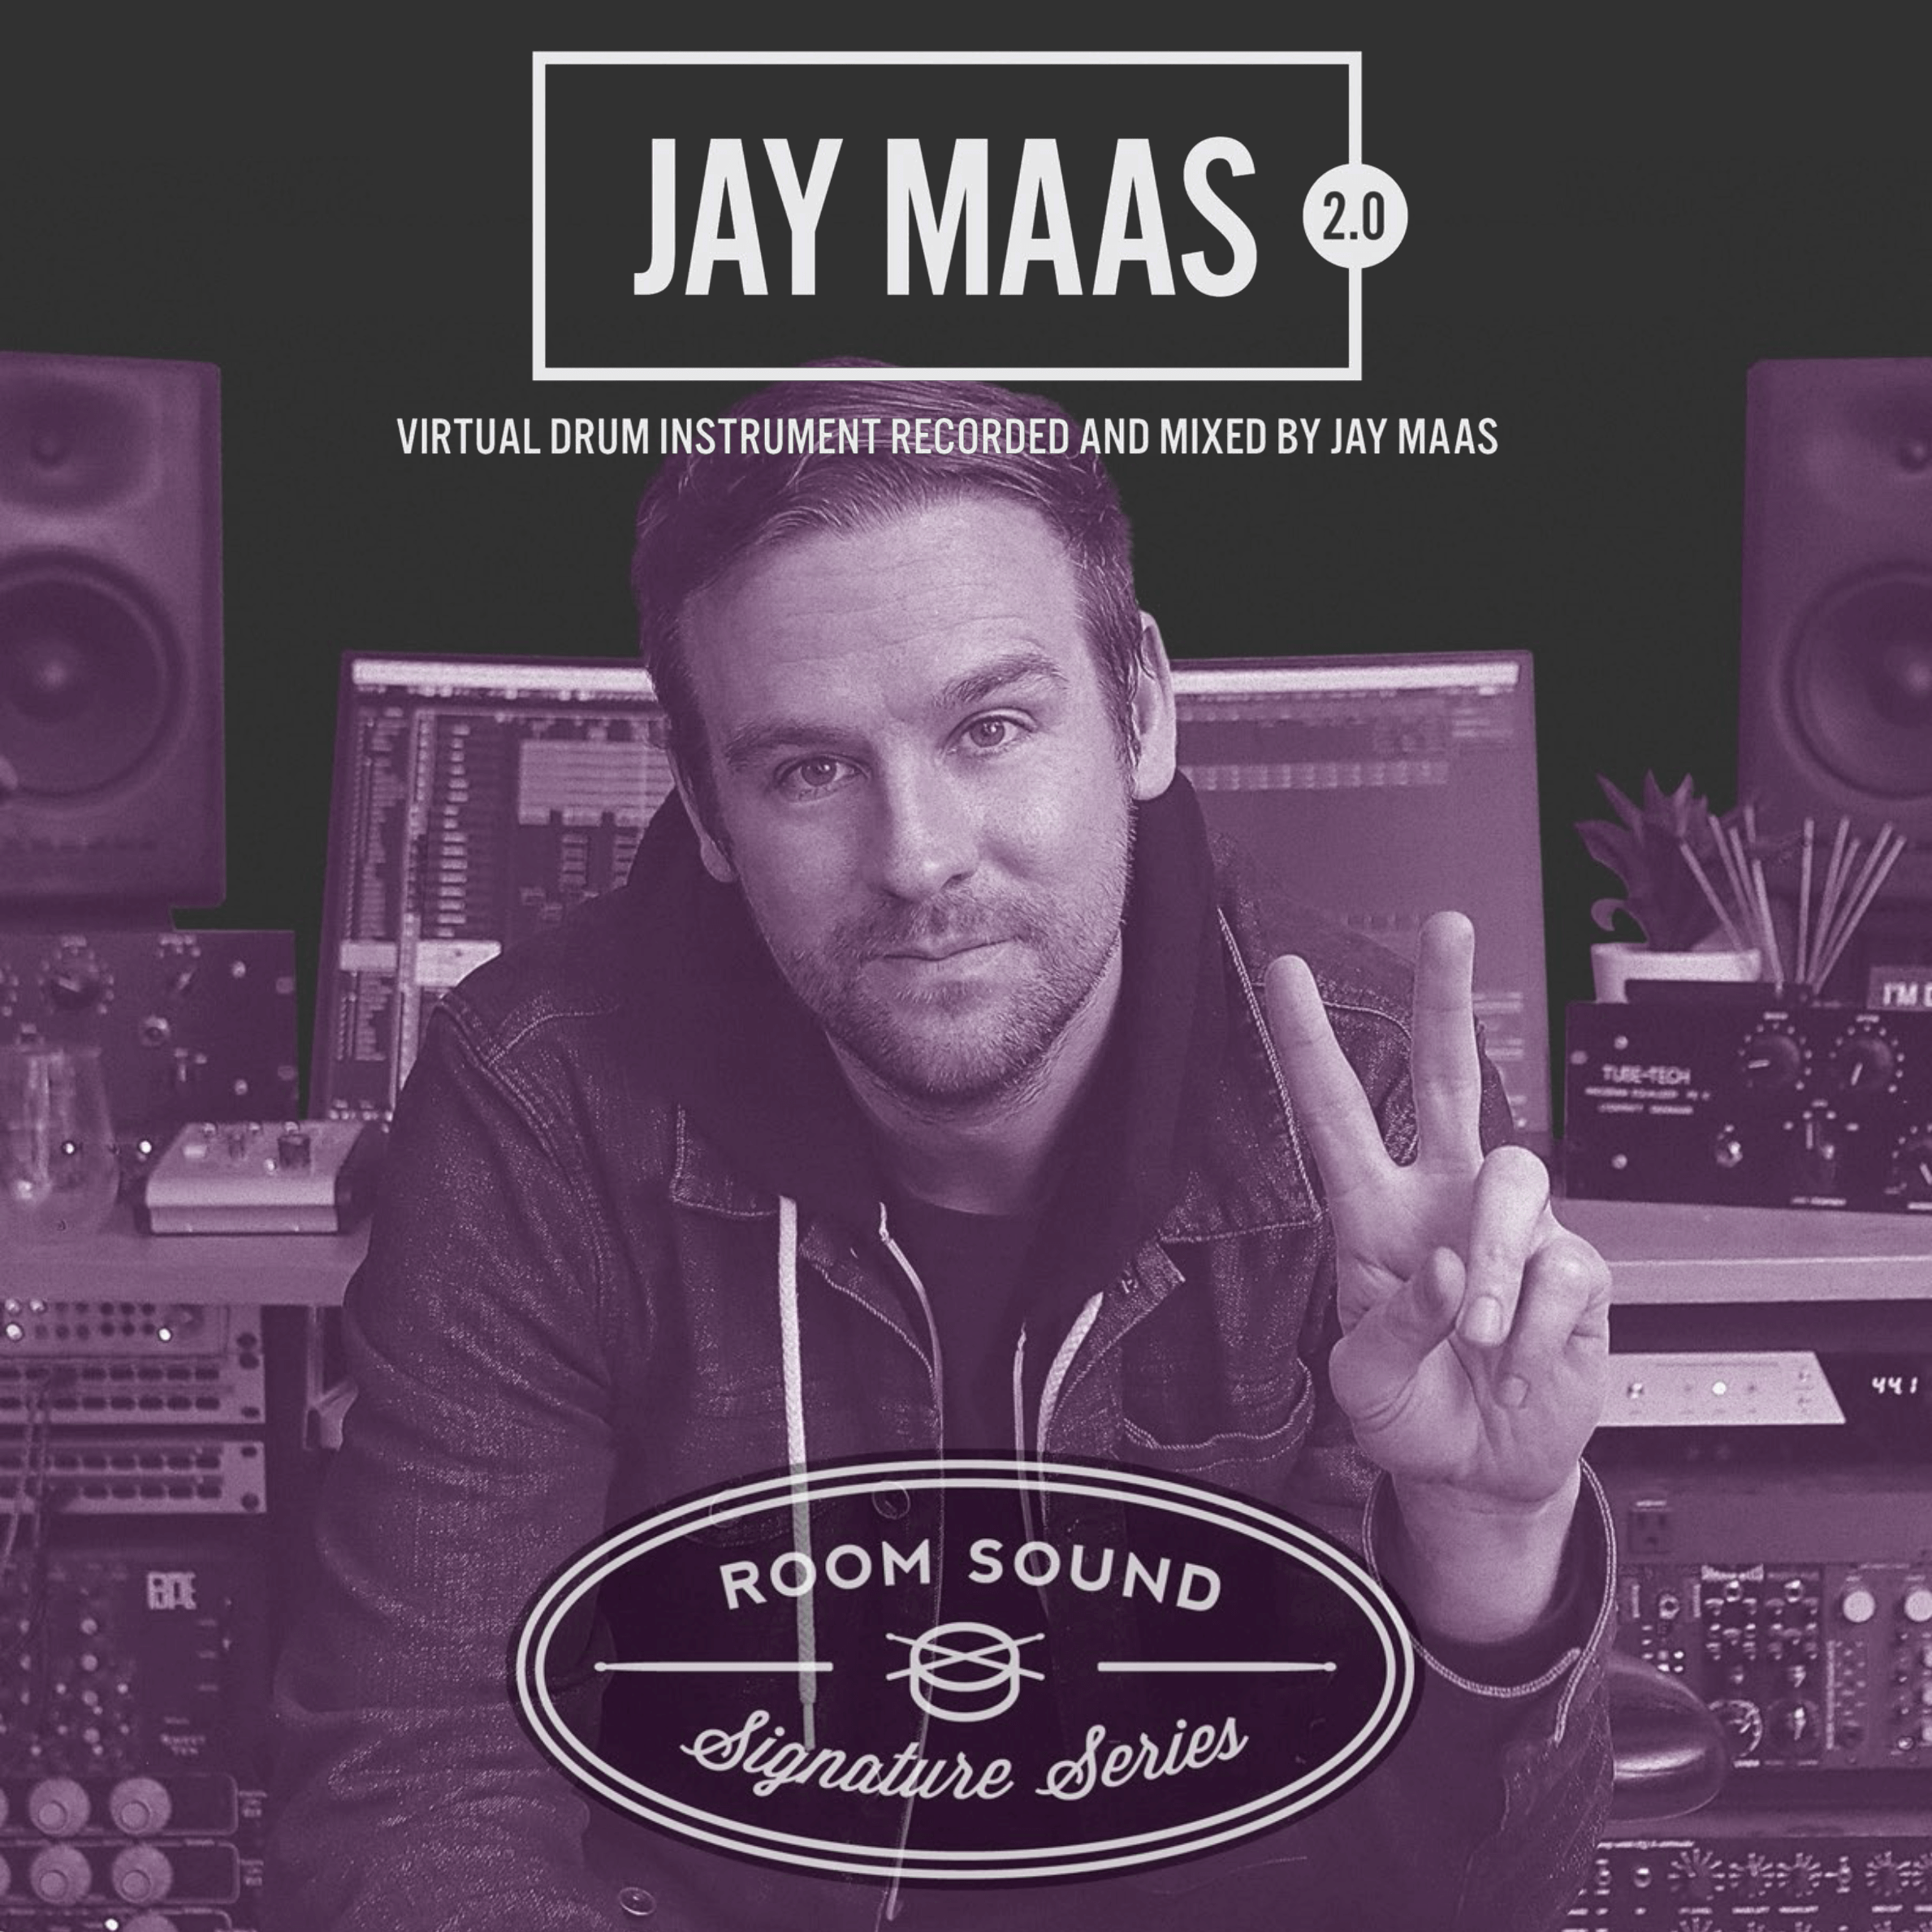 Room Sound Jay Maas Signature Series Drums 2.0